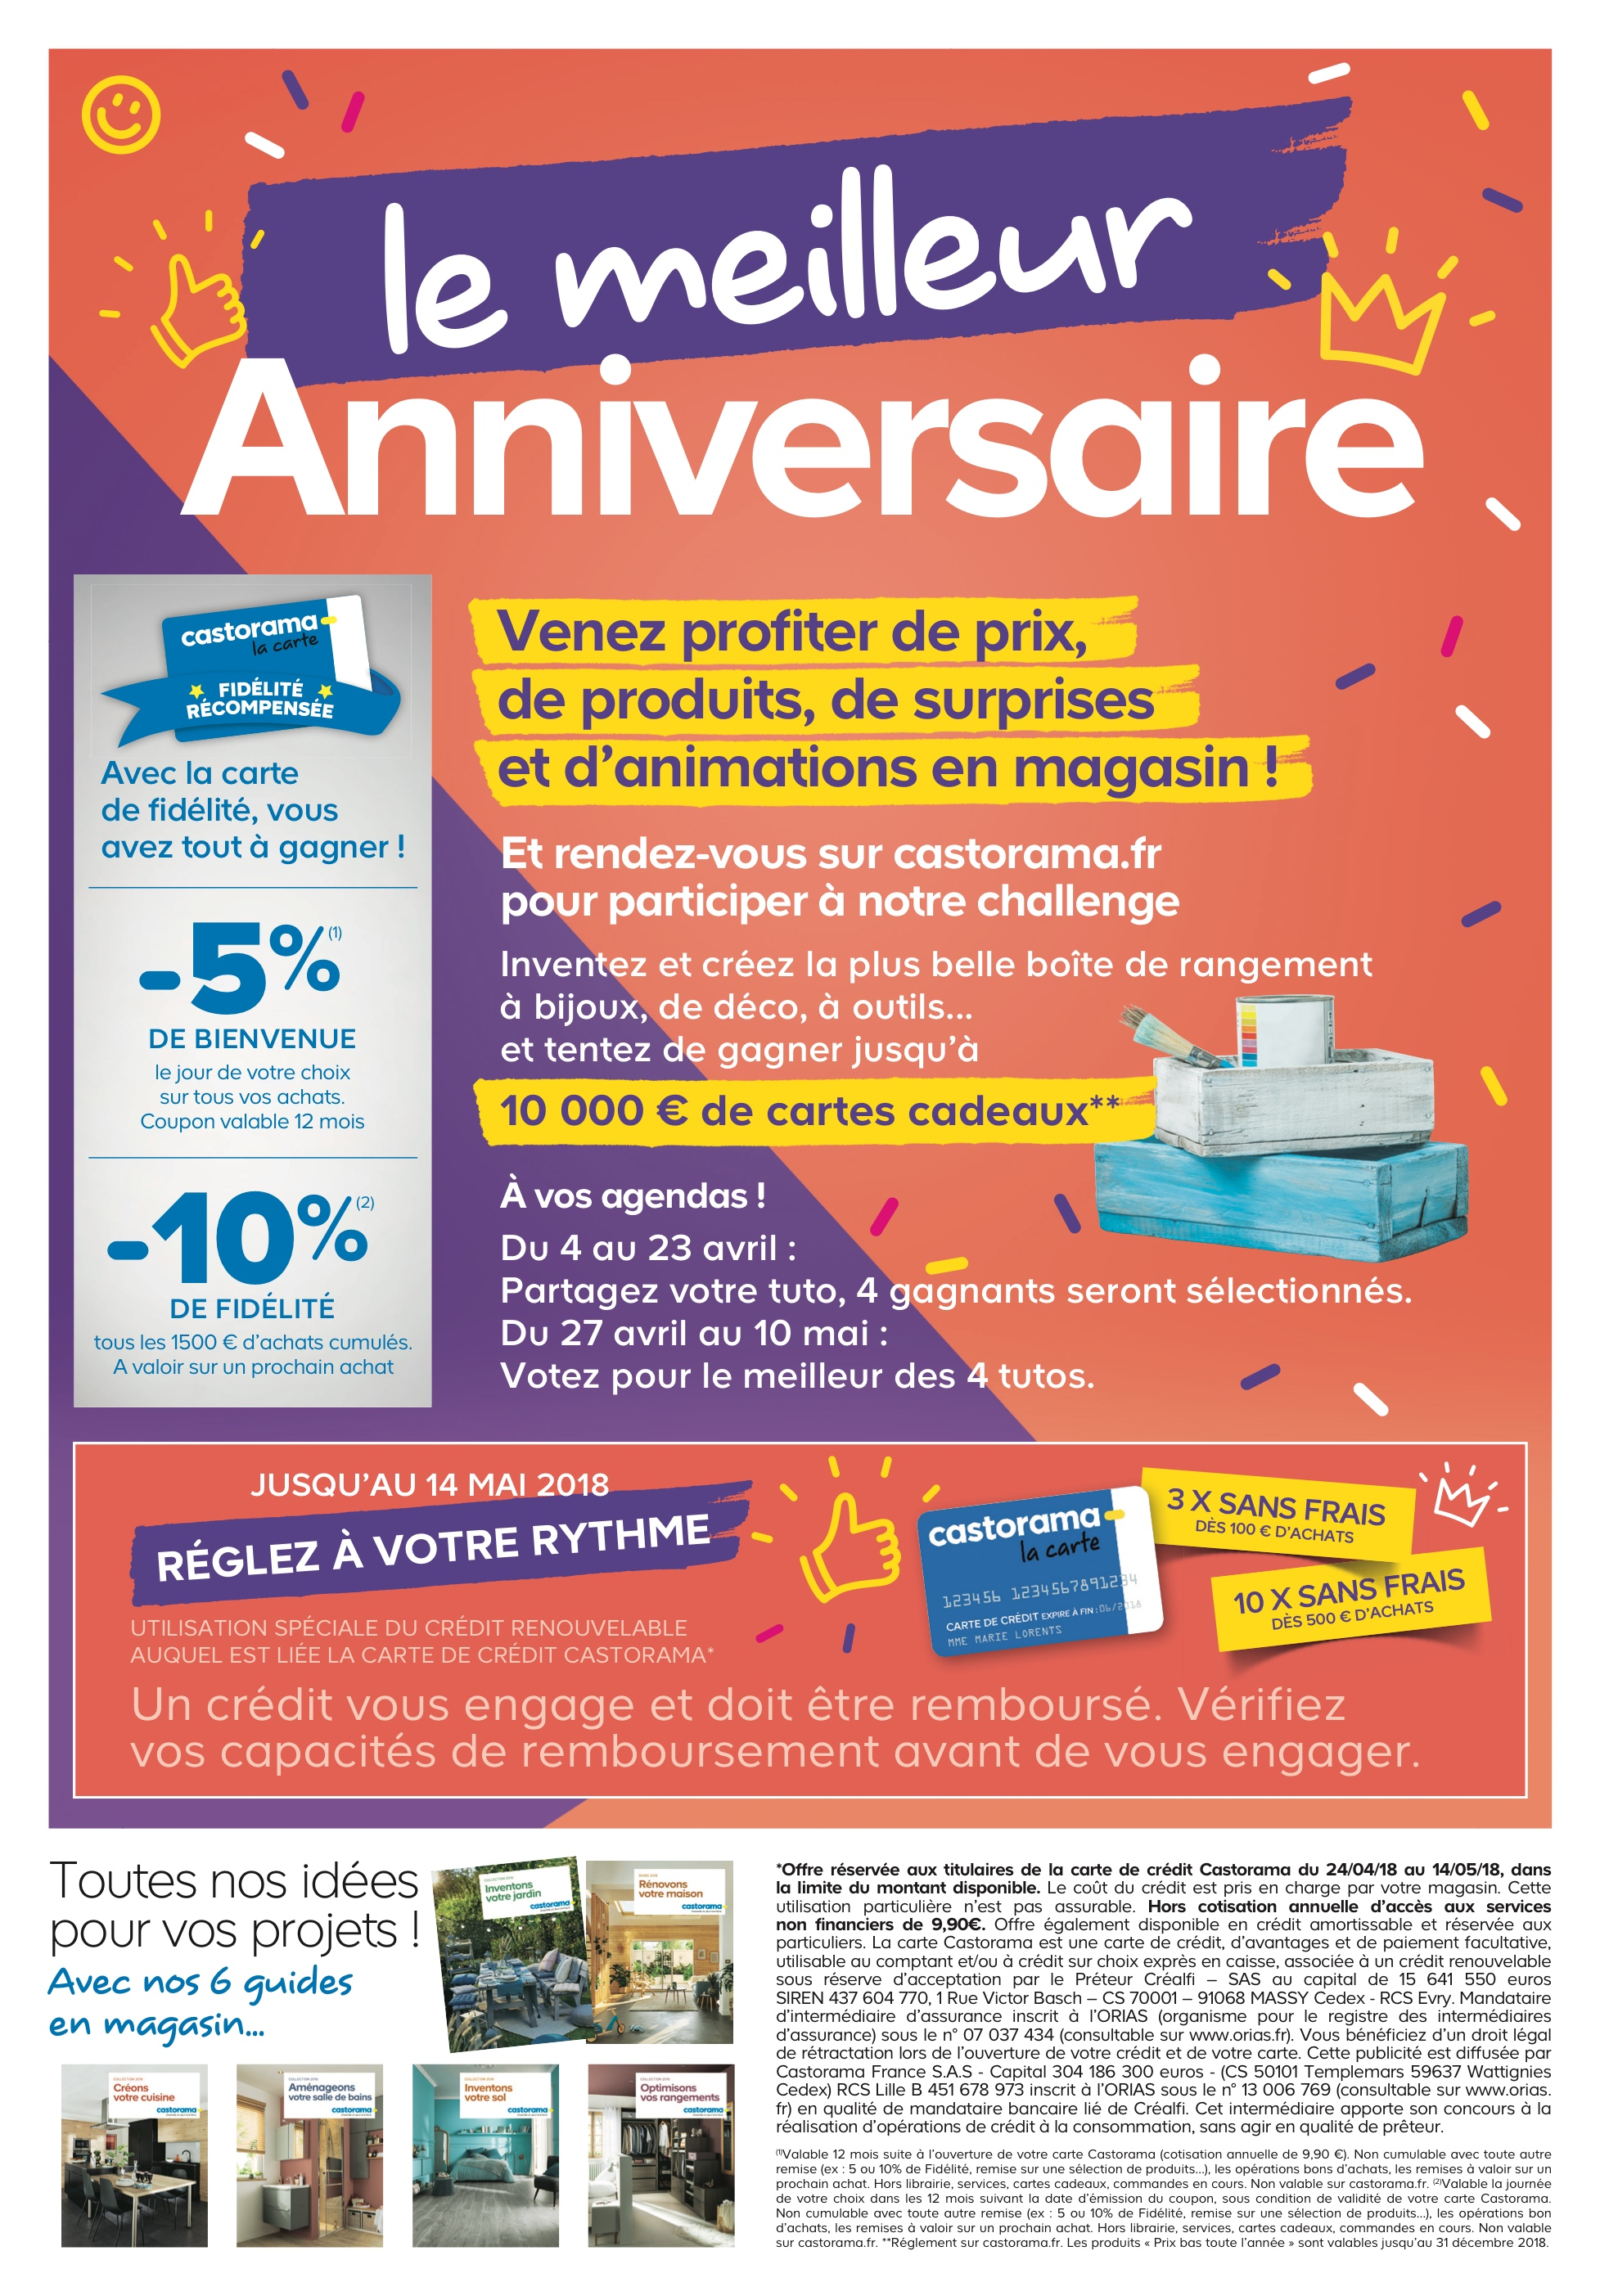 Le Meilleur Anniversaire Pages 1 28 Text Version Anyflip